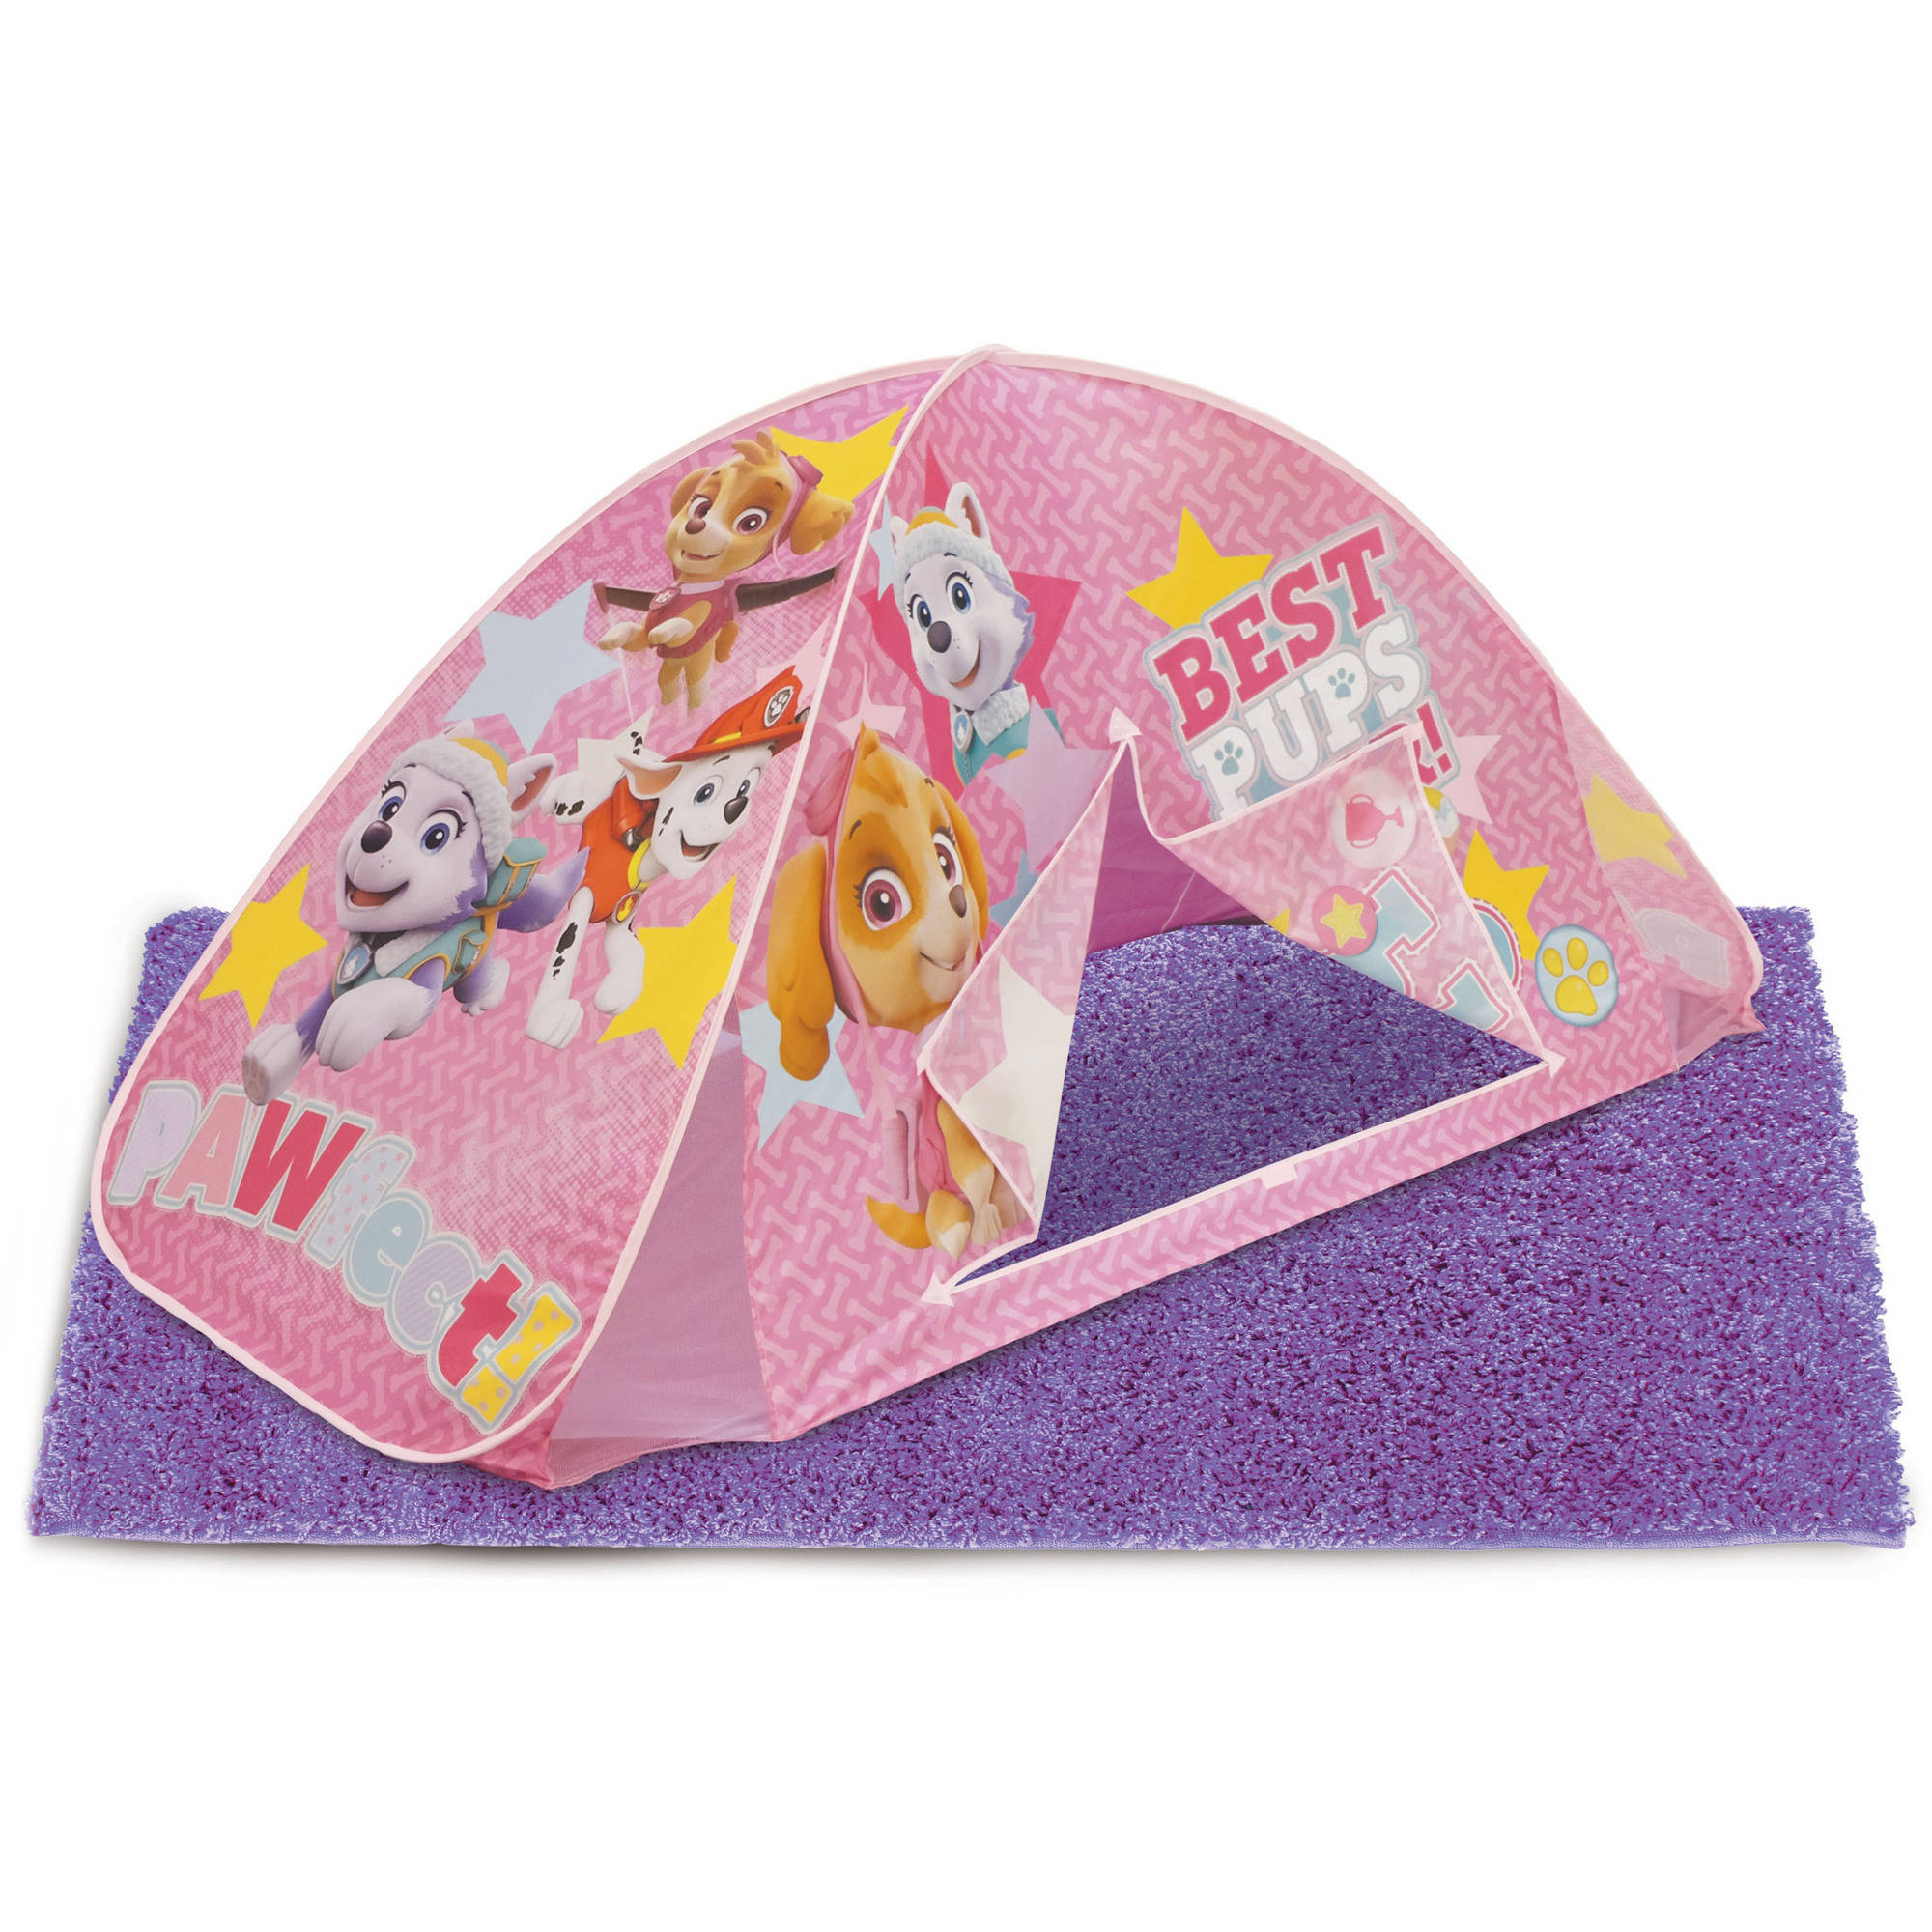 Paw Patrol Girls 2in1 Tent